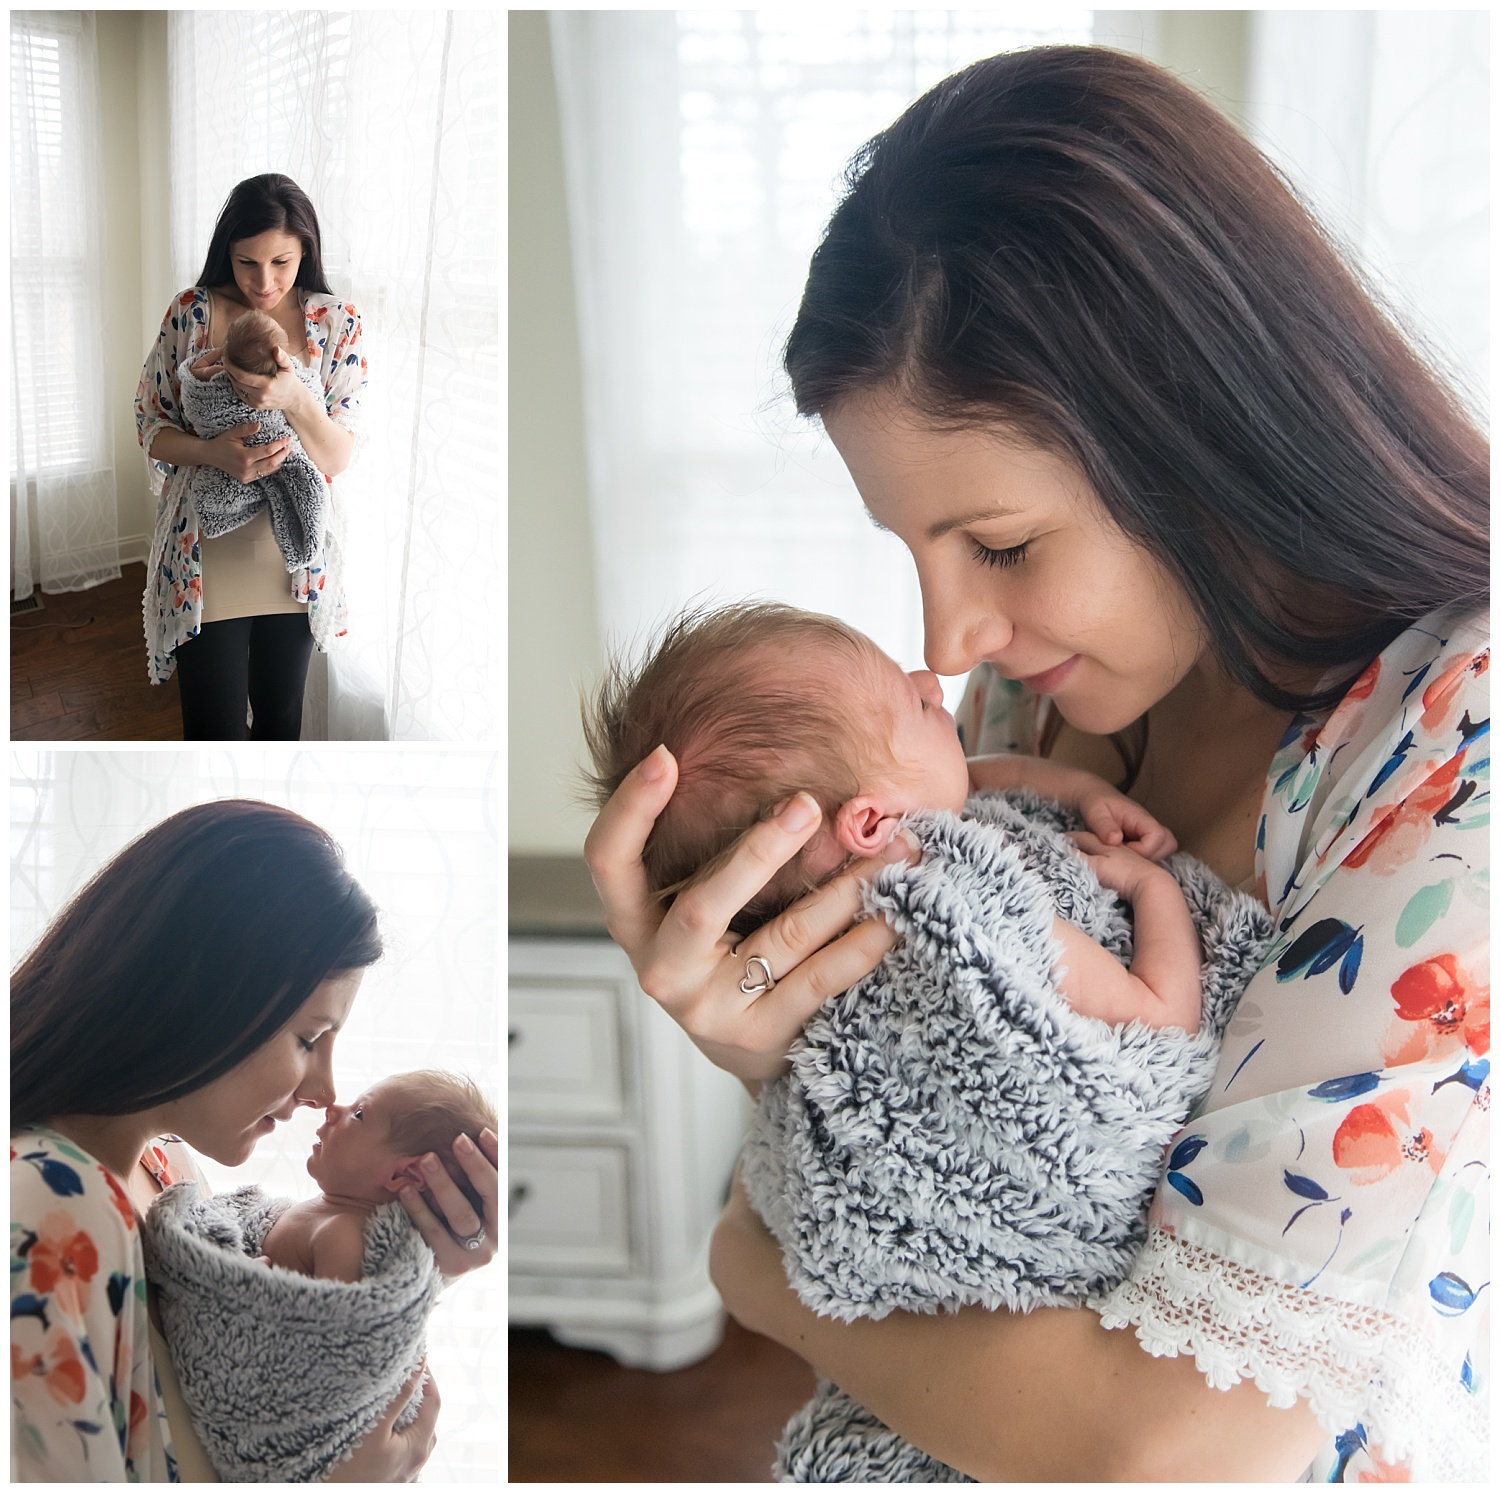 these are images taken during an in home lifestyle newborn family session. mom is holding the newborn baby girl next to the window and giving her kisses.